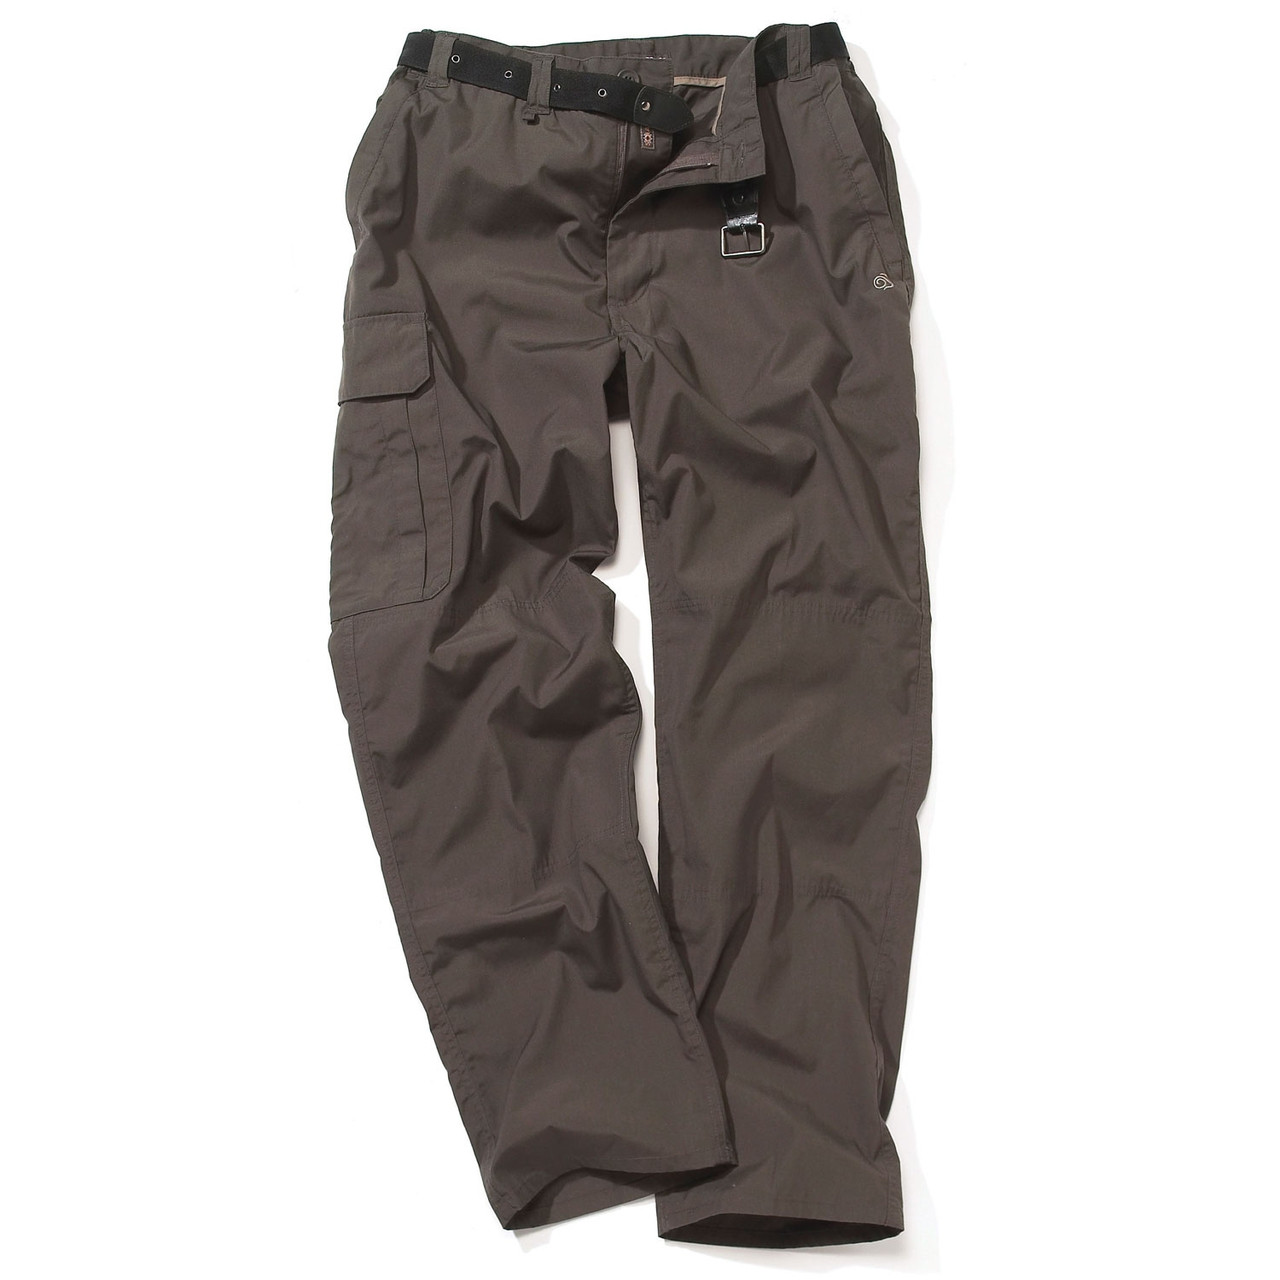 Craghopper Kiwi Trousers